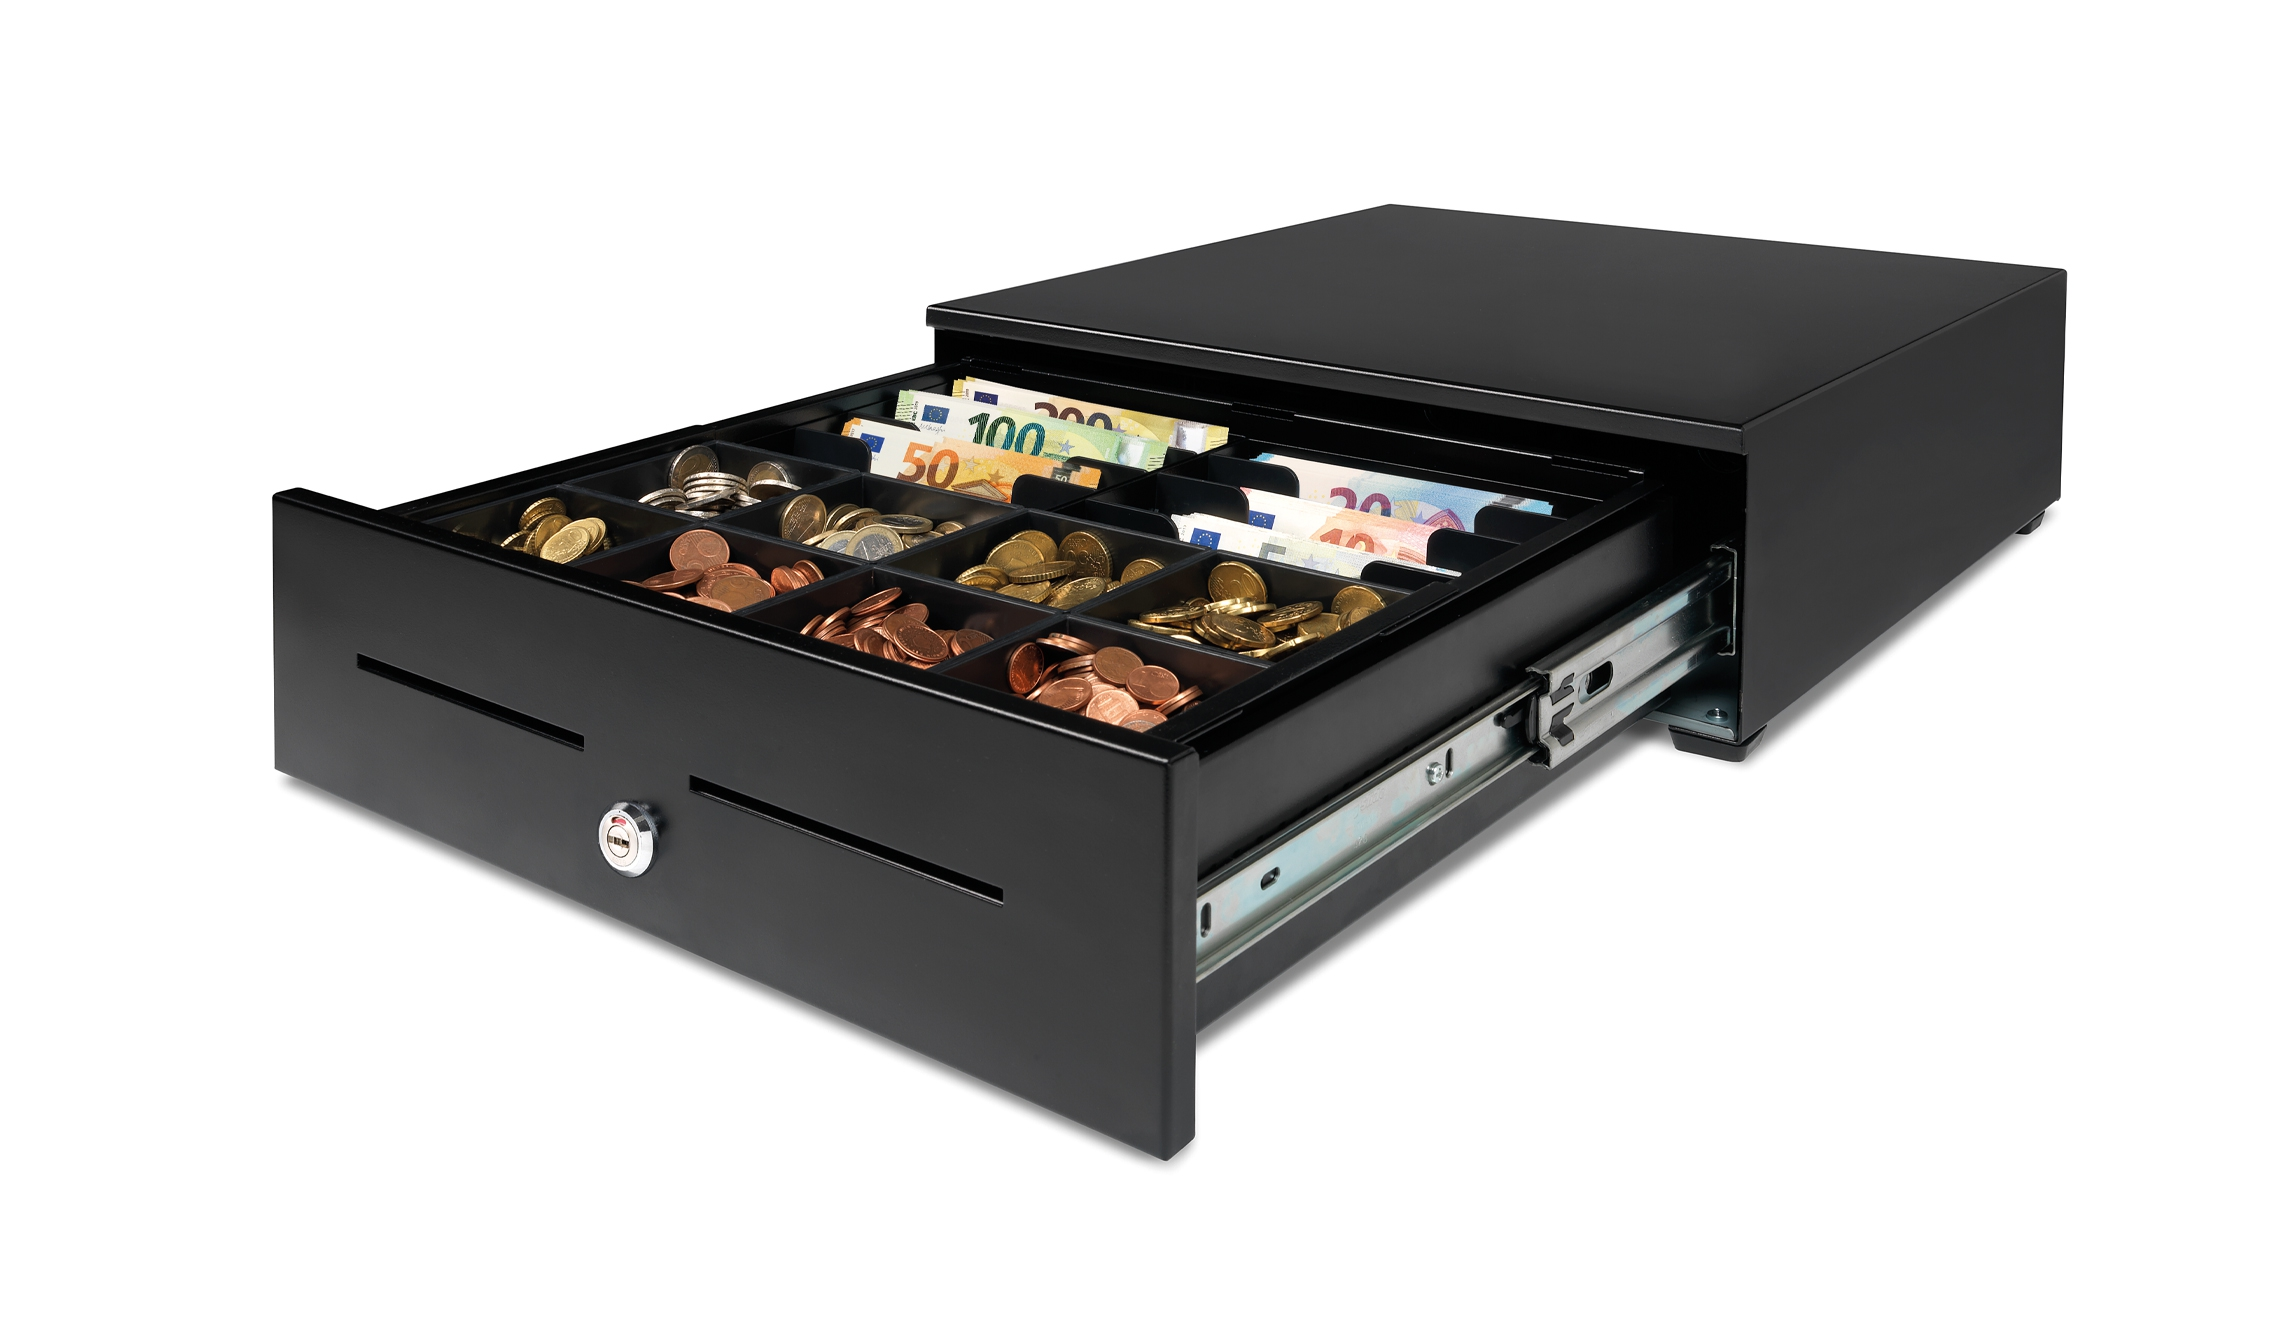 safescan-hd4142-cash-tray-lay-out